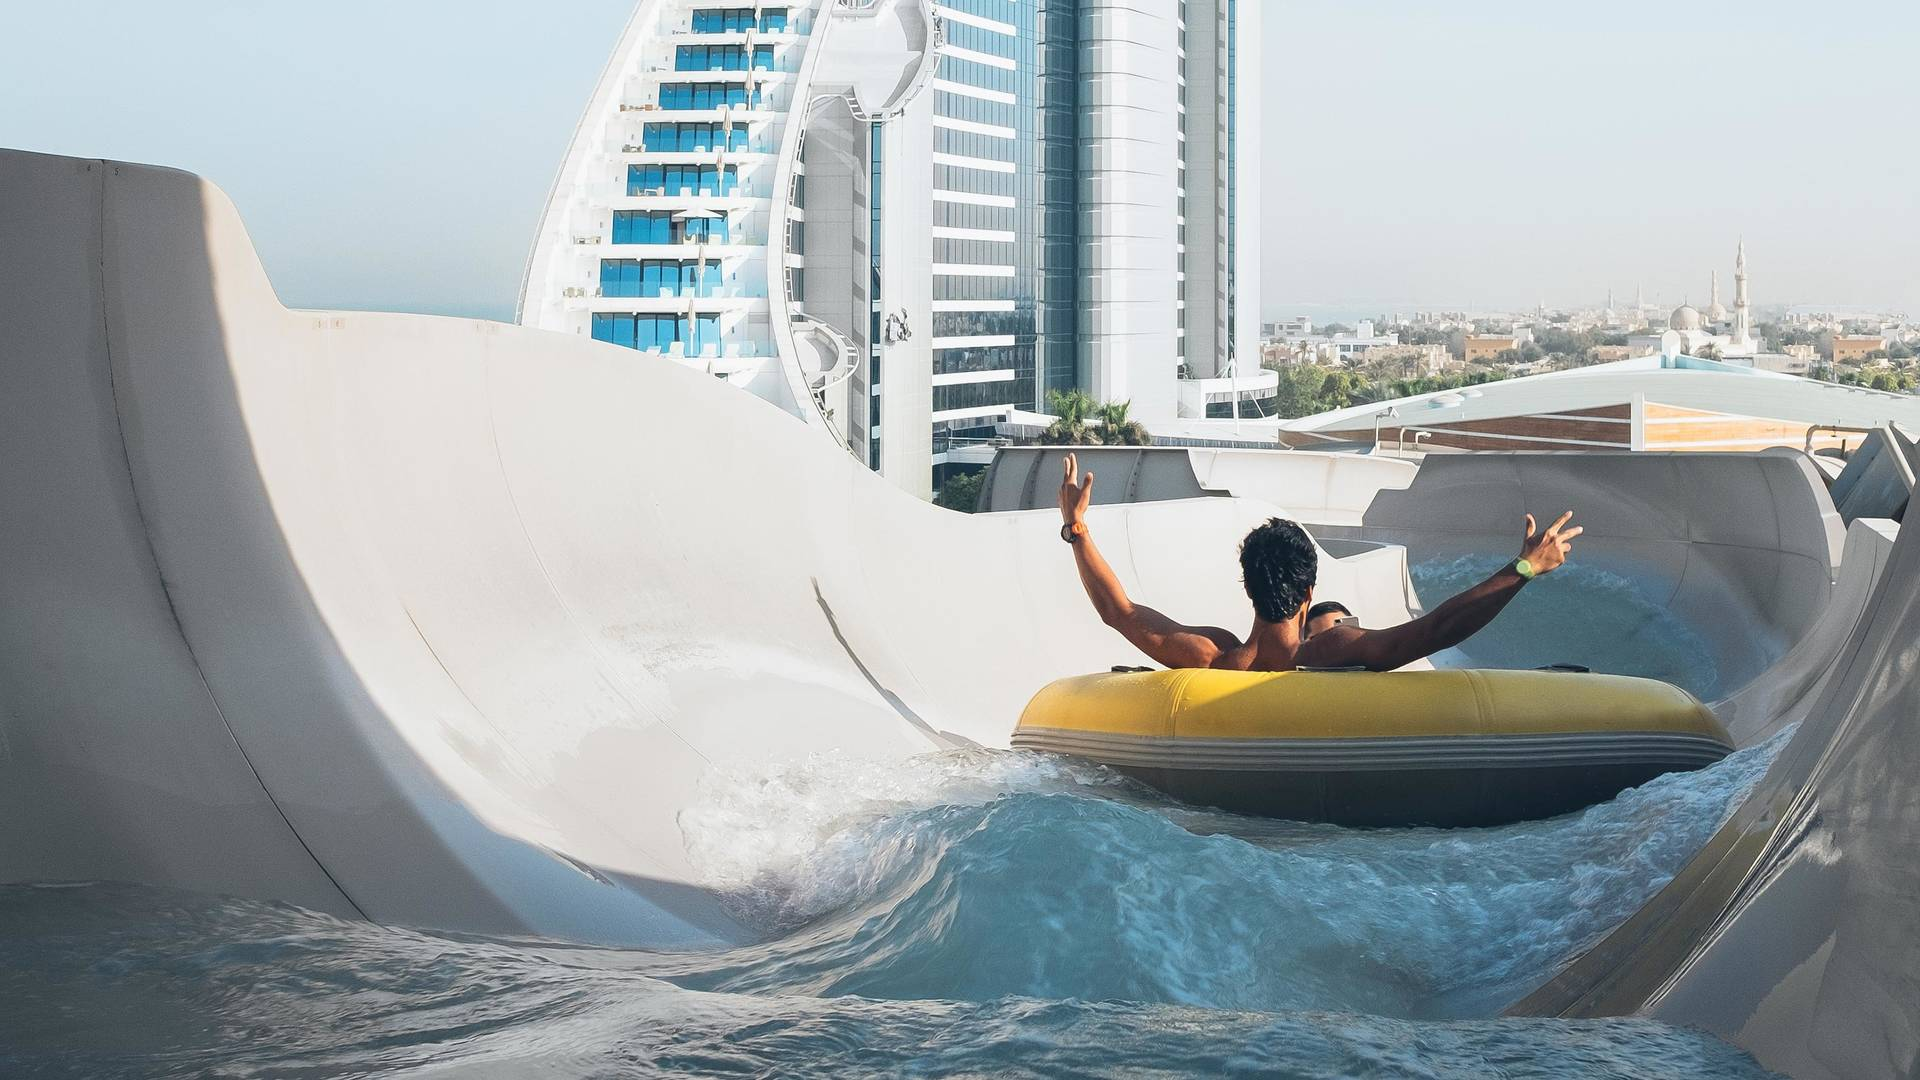 Man on a water slide